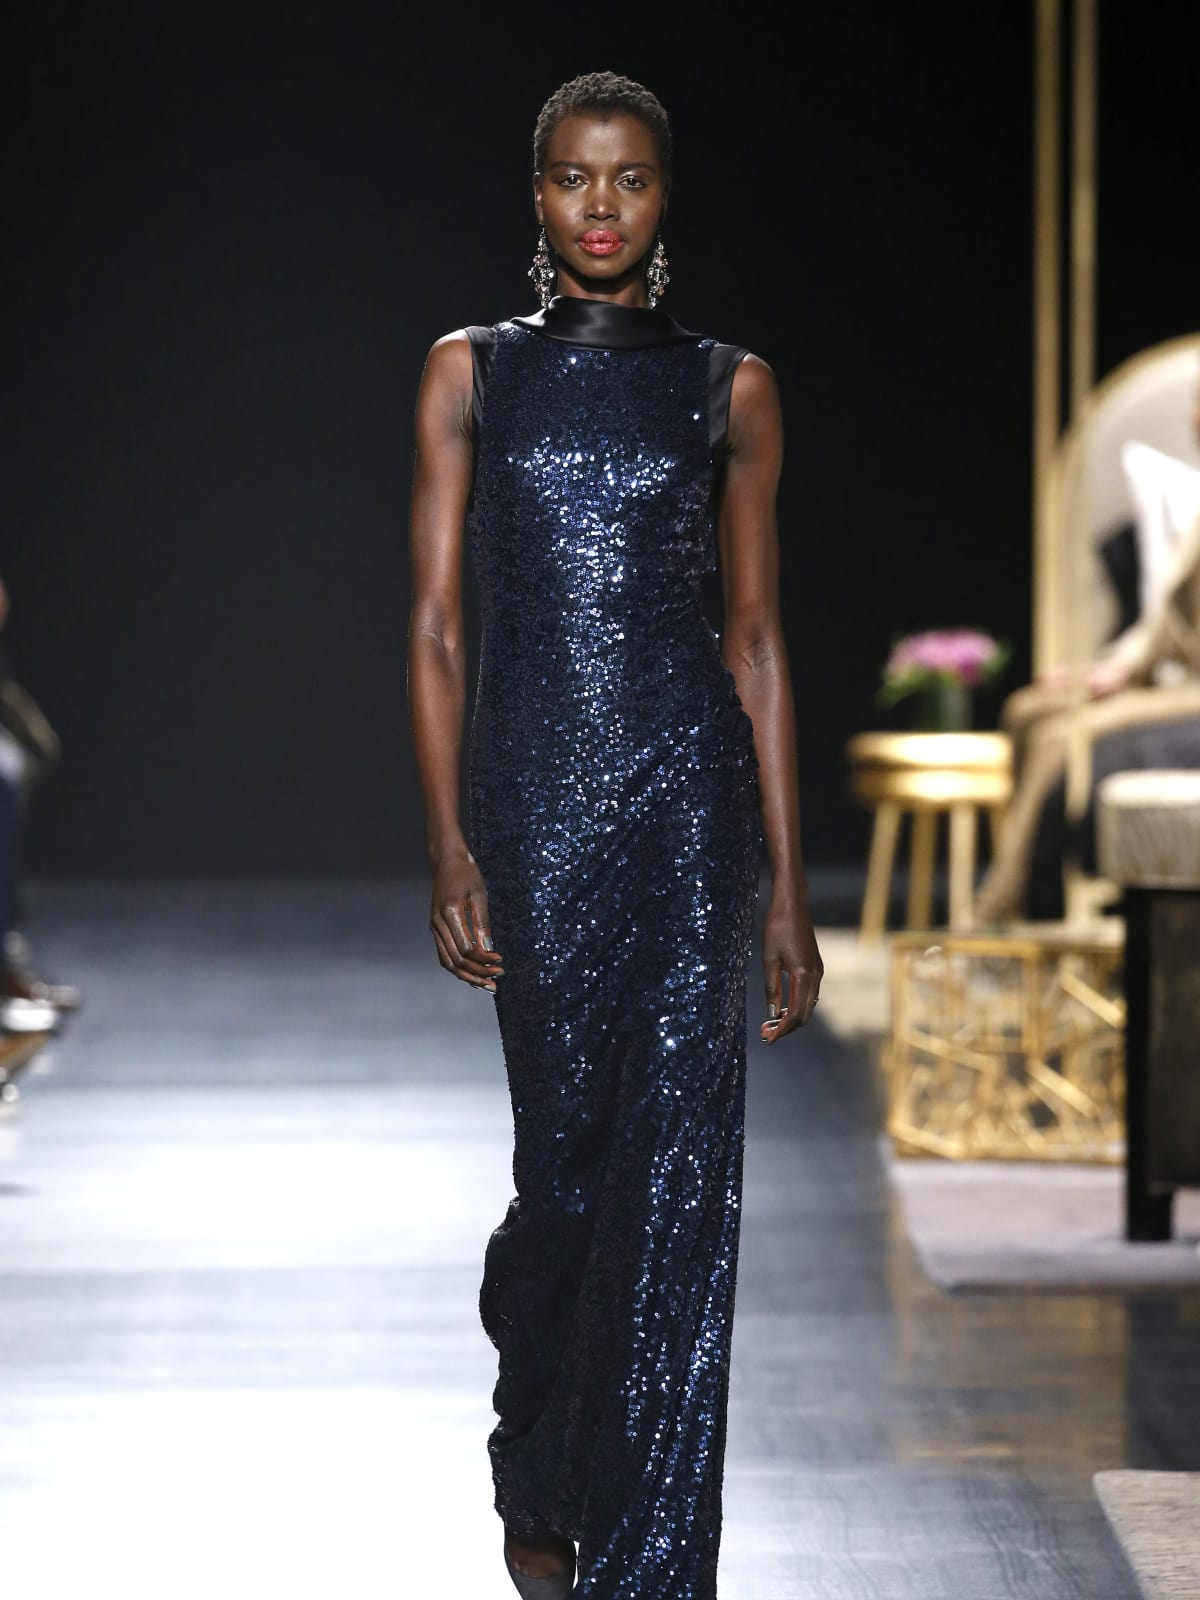 Badgley Mischka fall 2017 look 3